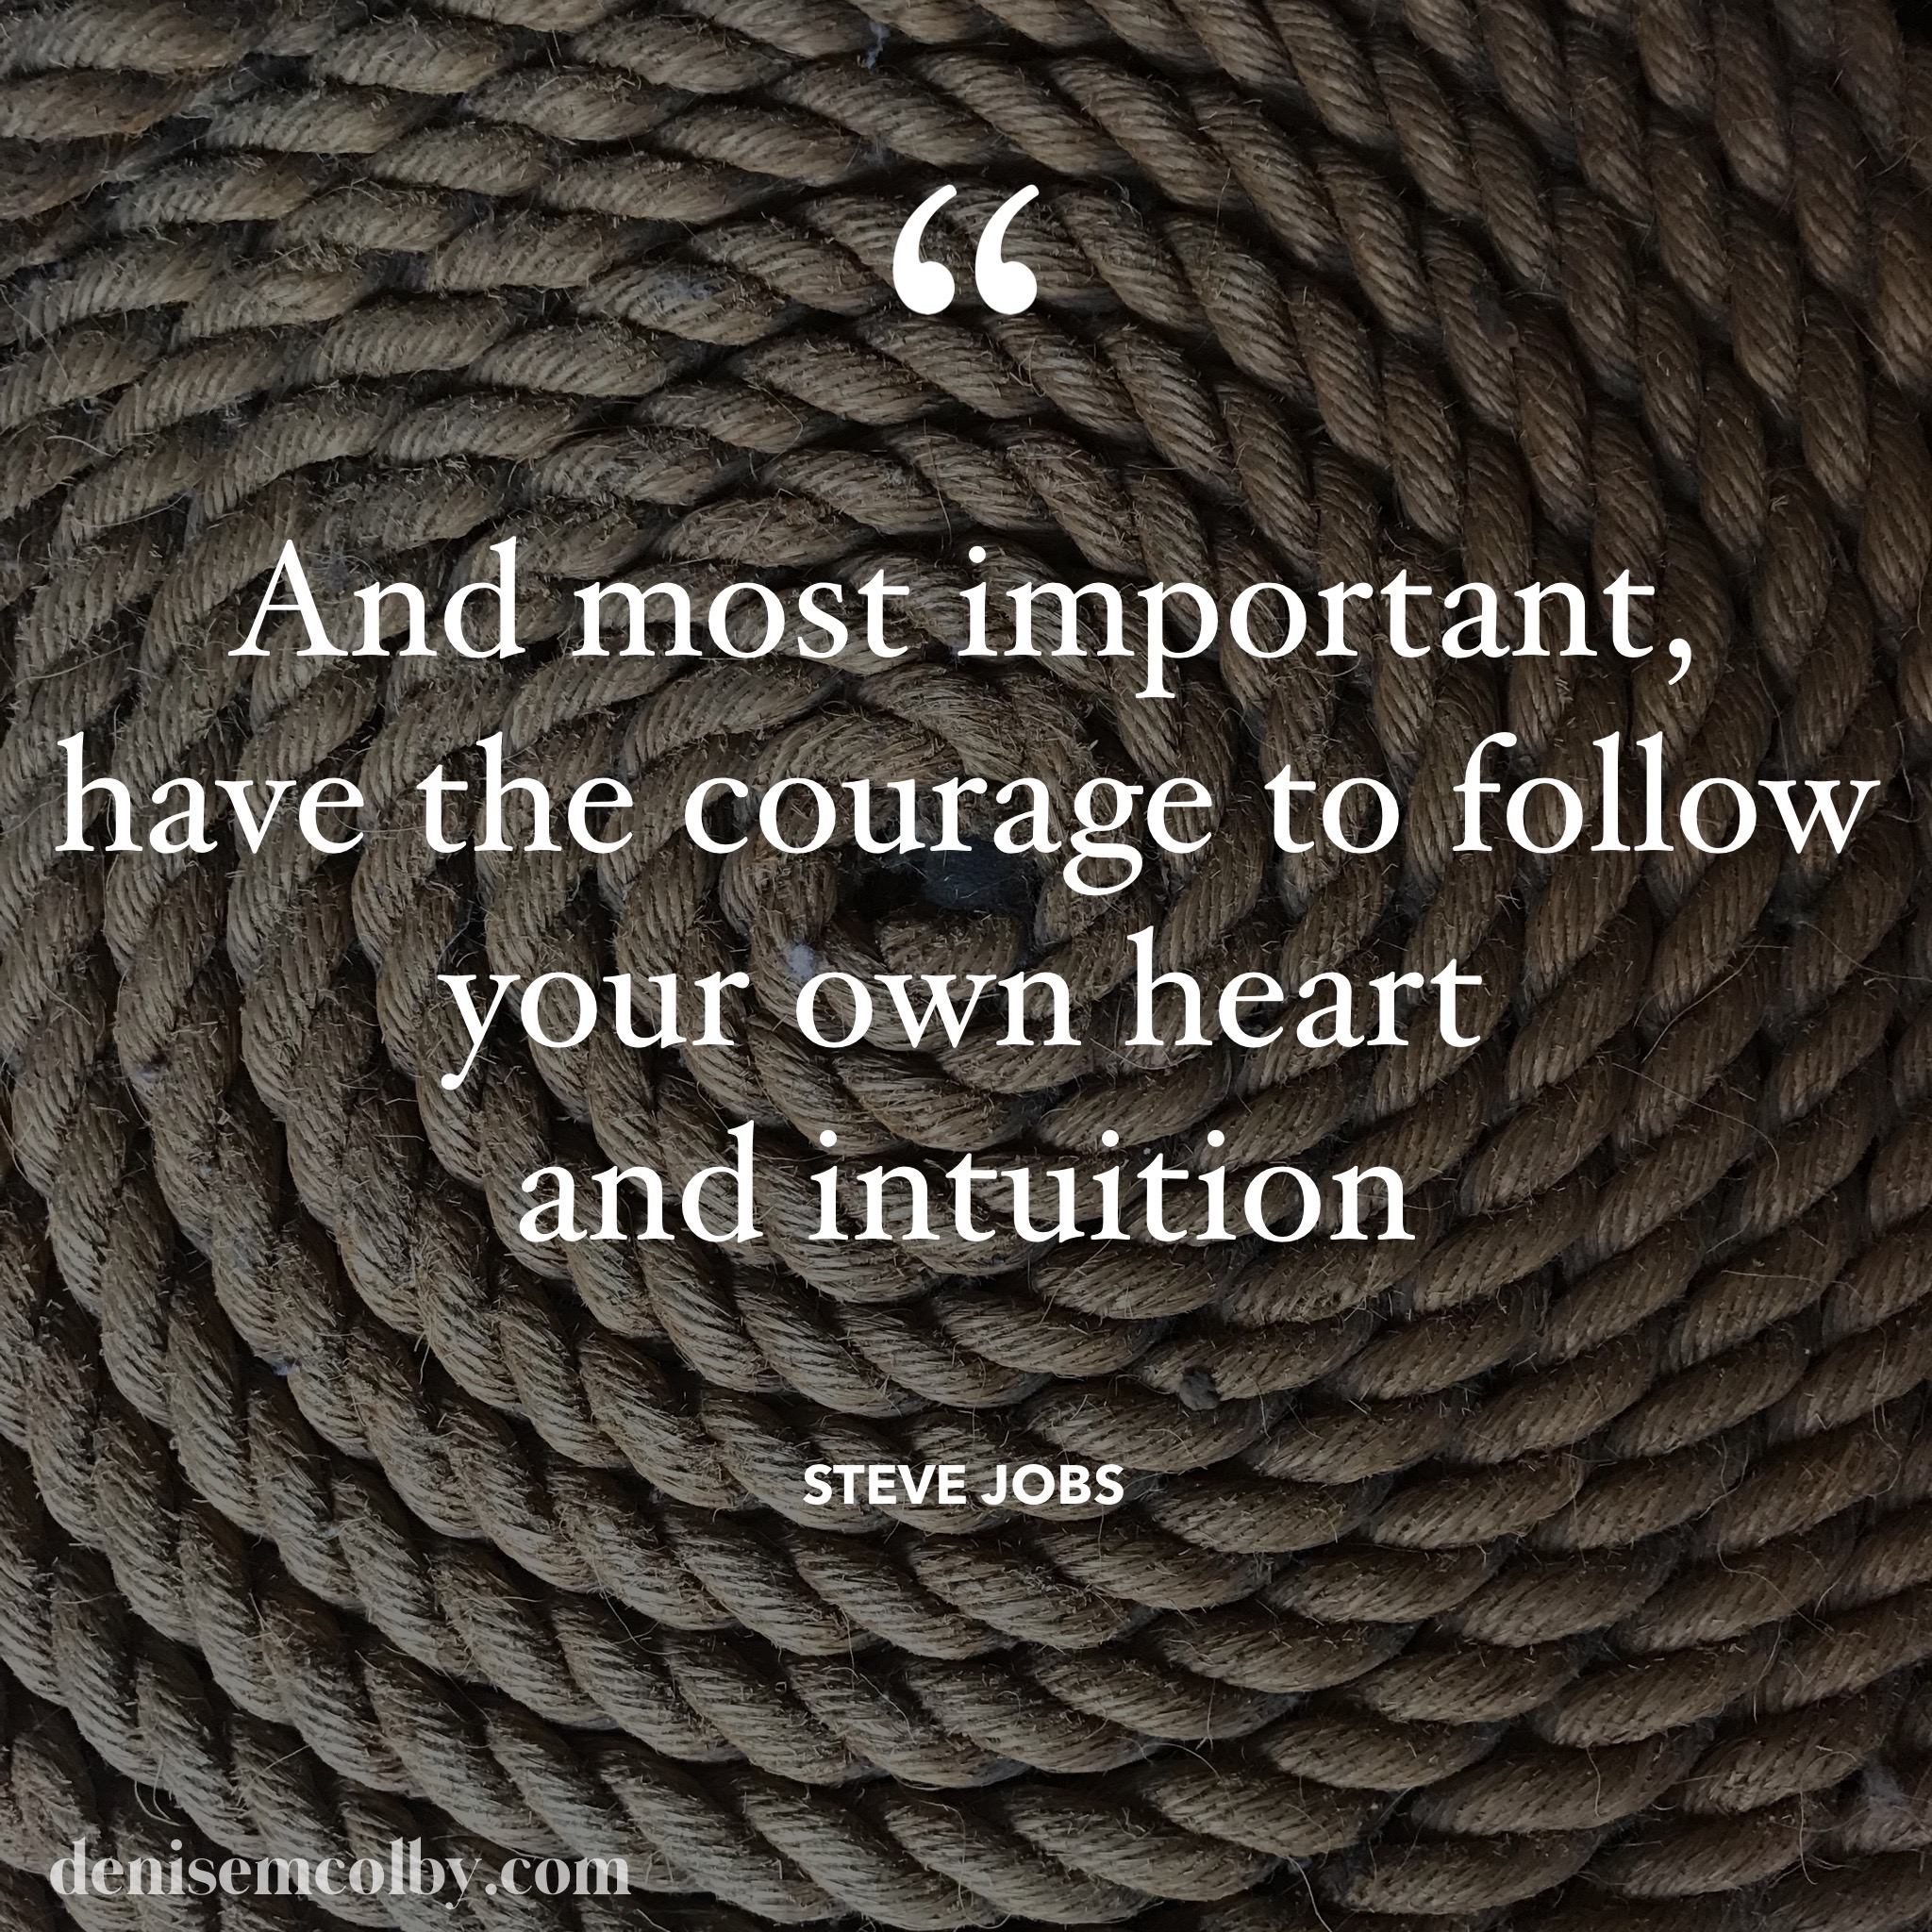 Steve Jobs Quote And most important, have the courage to follow your own heart and intuition